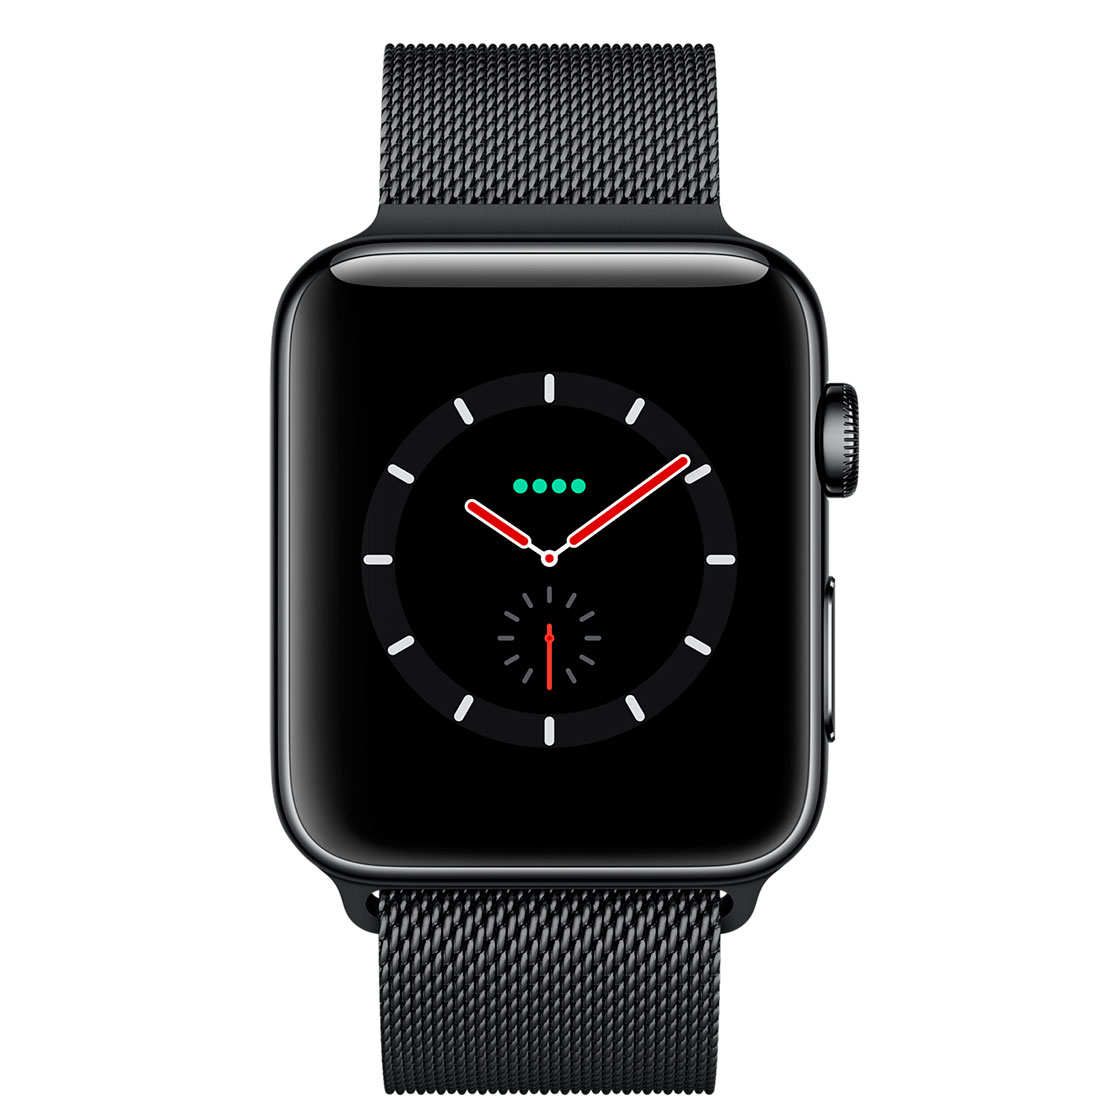 space black stainless steel watch - 800×800